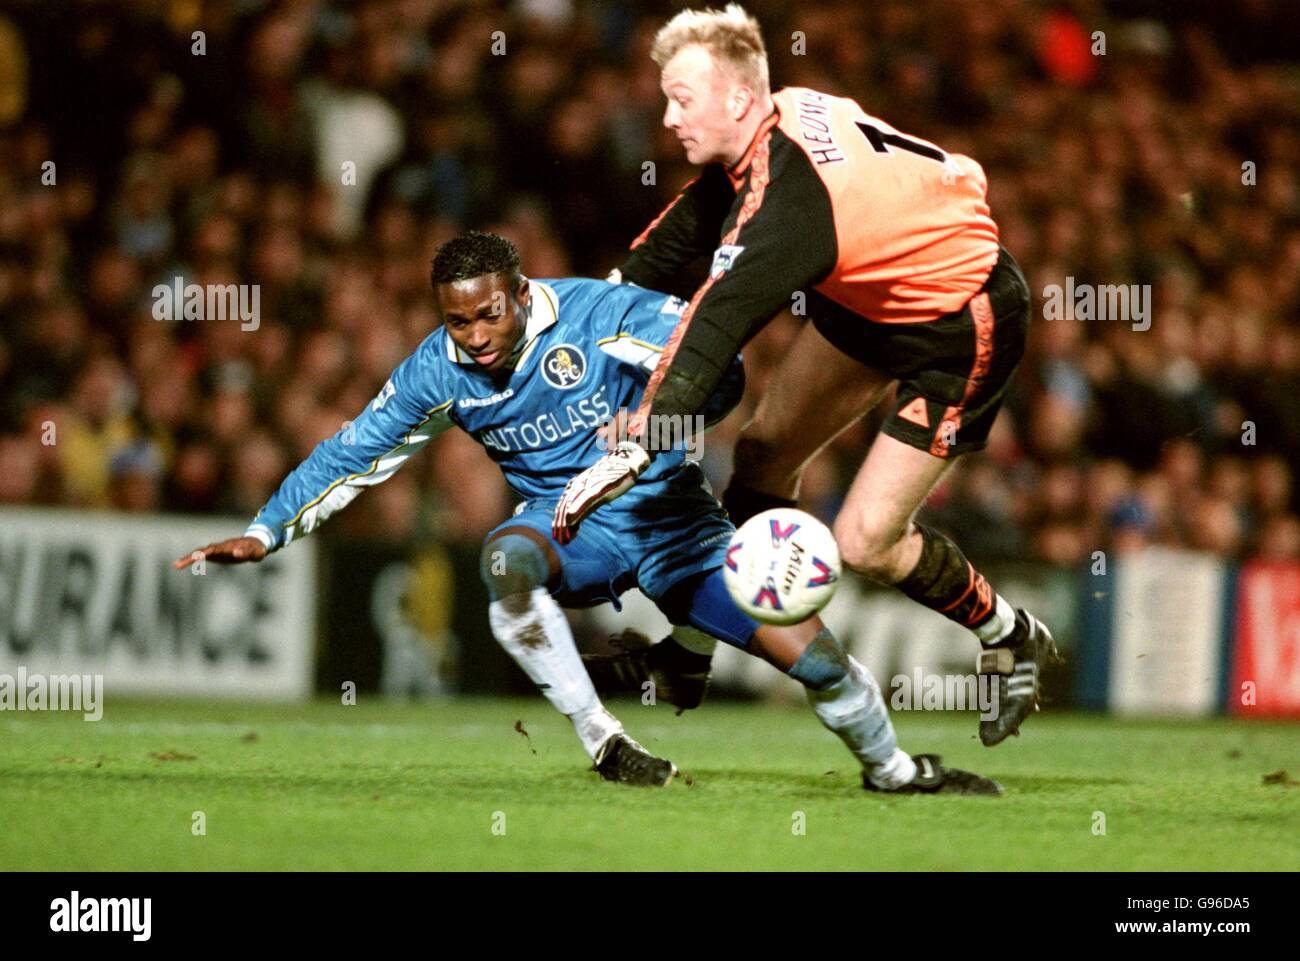 Soccer - FA Carling Premiership - Chelsea v Coventry City - Stock Image